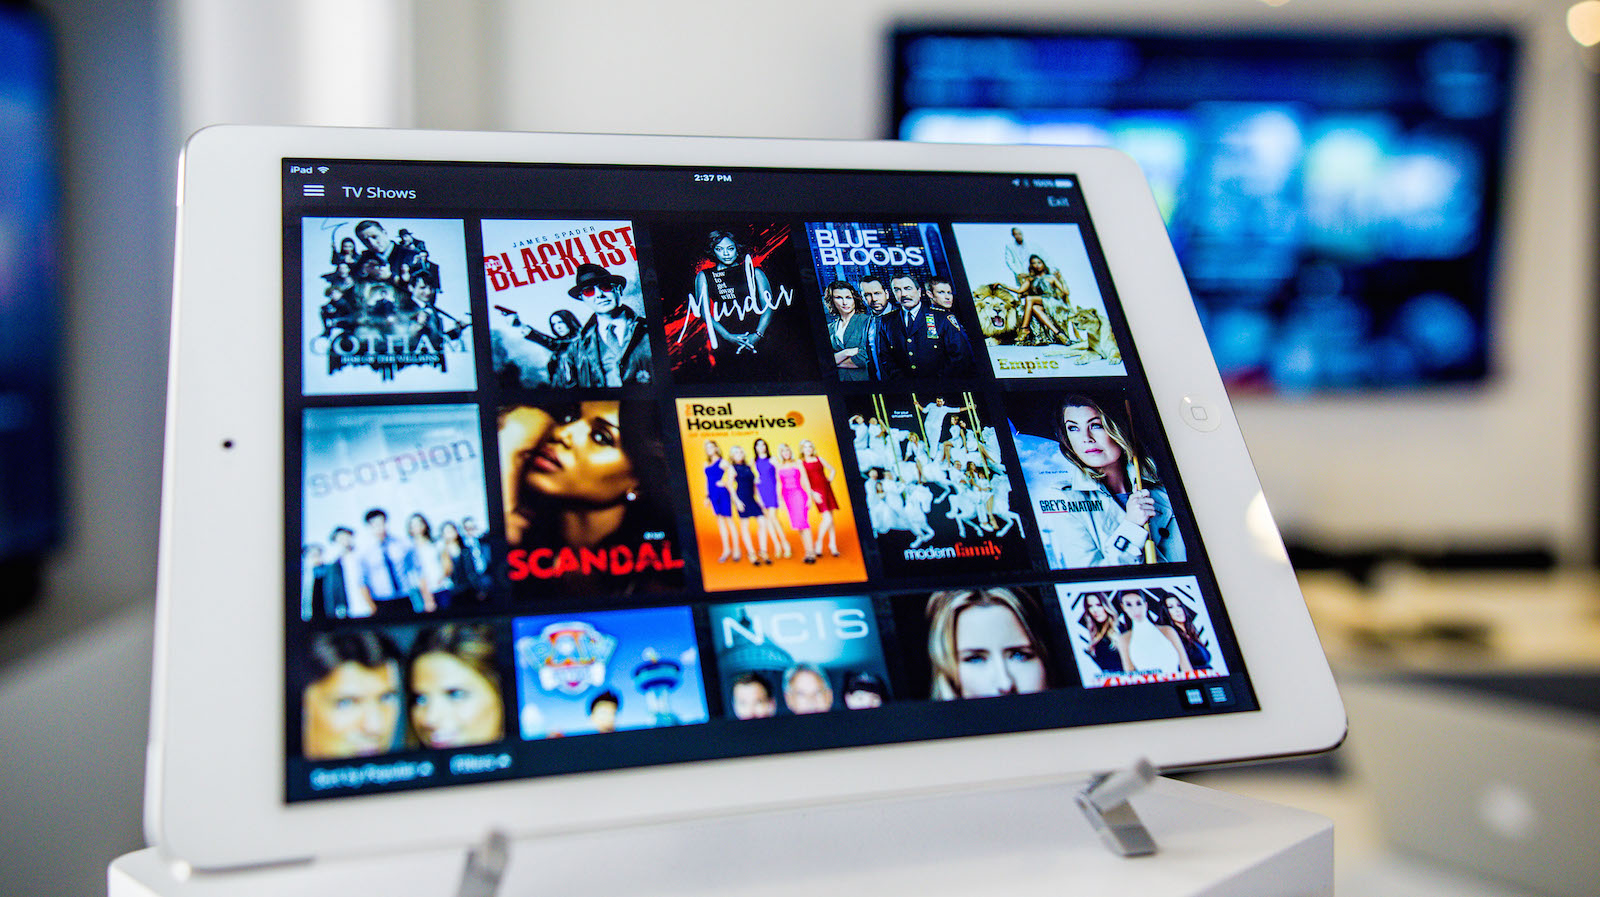 With apps like Netflix and Hulu, your old cable box wants to